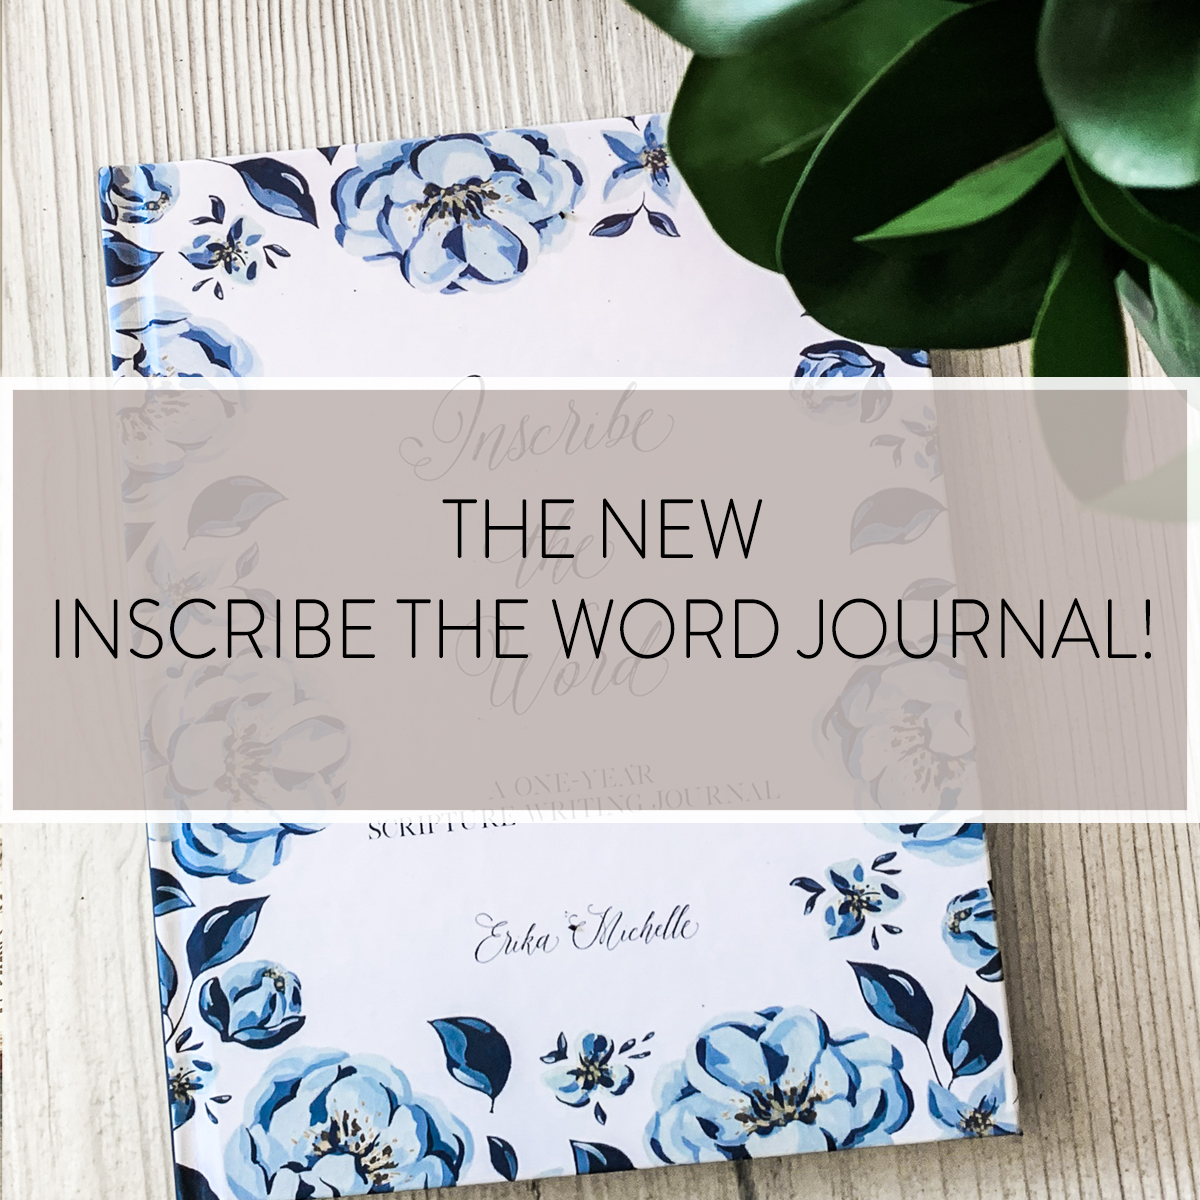 Our INSCRIBE THE WORD JOURNAL is an excellent resource to inscribe a year's worth of Scripture. This undated journal is a beautiful companion to your Bible Study.